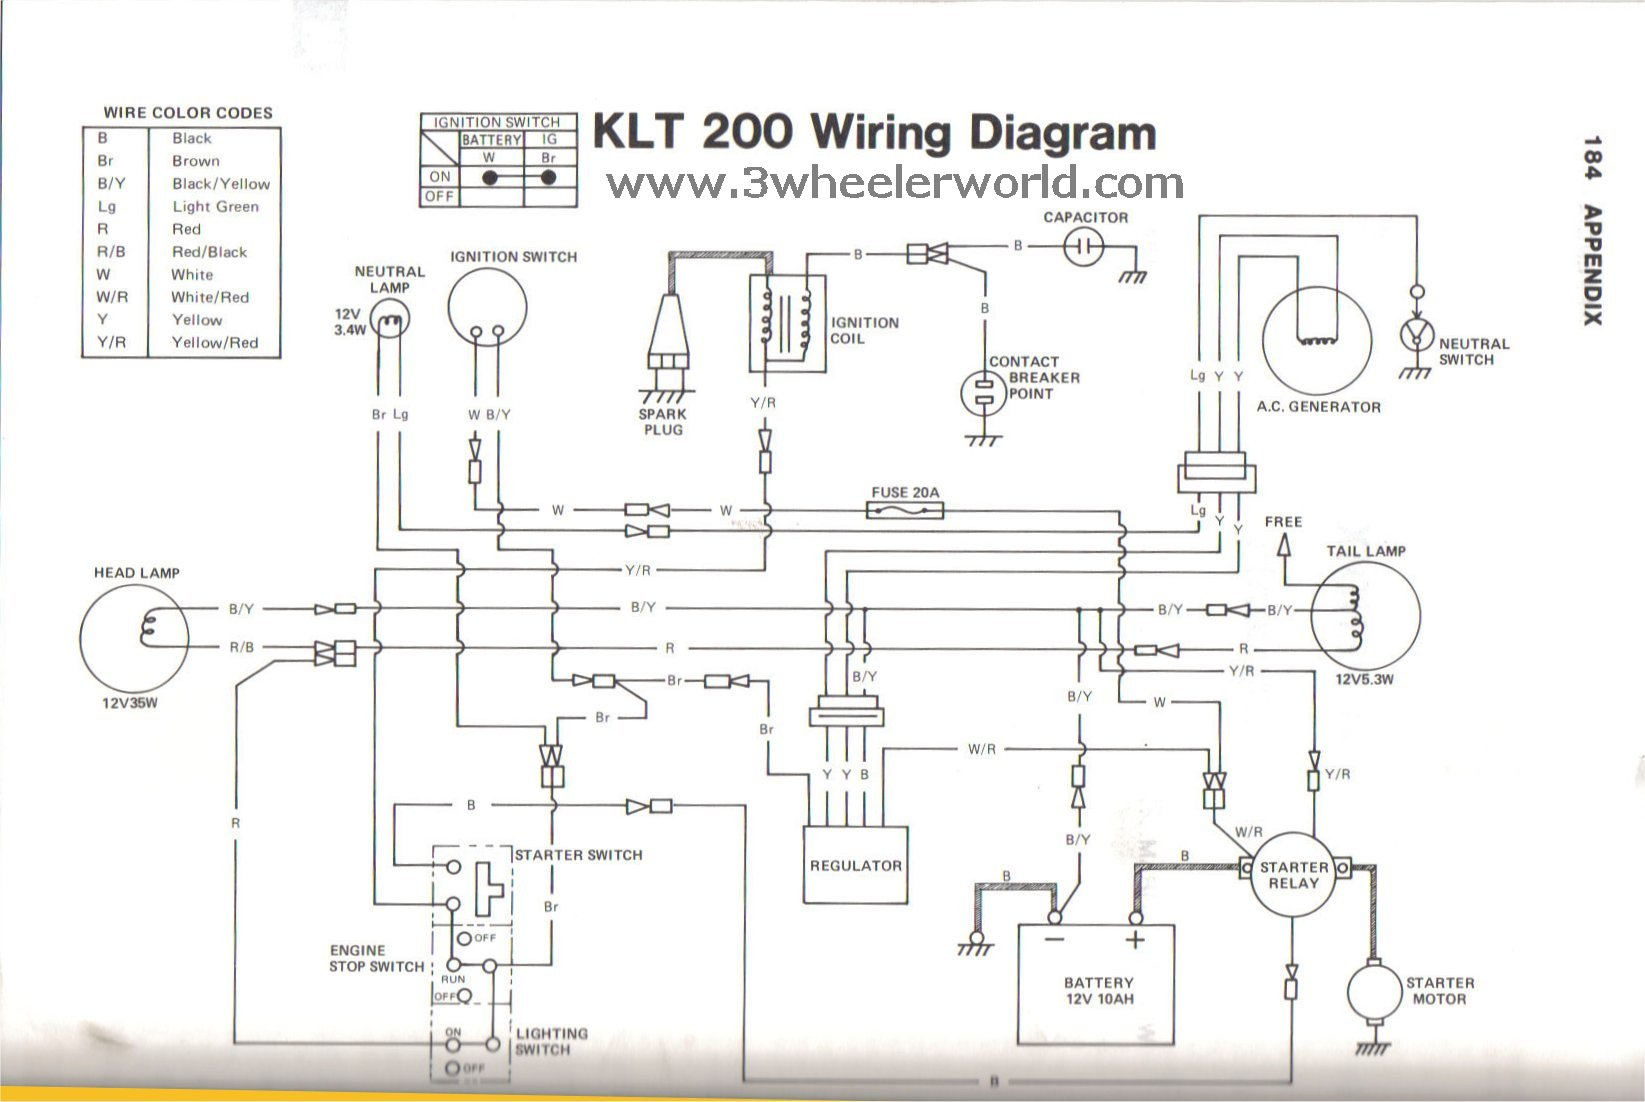 Kawasaki Generator Wiring Diagram | Wiring Diagram on triton trailer wiring diagram, kawasaki atv wiring diagram, kawasaki 4 wheeler wiring diagram, kawasaki 250 parts diagram, kawasaki ignition system wiring diagram, kawasaki 100 wiring diagram, klr 650 wiring diagram, kawasaki kz1000 wiring-diagram, kawasaki mojave 250, kawasaki motorcycle wiring diagrams, ezgo wiring diagram, kawasaki bayou 185 wiring-diagram, kawasaki mule wiring-diagram, kawasaki 500 wiring diagram, suzuki marauder wiring diagram, kawasaki 750 wiring diagram, kawasaki bayou 300 wiring diagram, kawasaki 400 wiring diagram, kawasaki bayou 220 wiring diagram, kawasaki engine wiring diagrams,